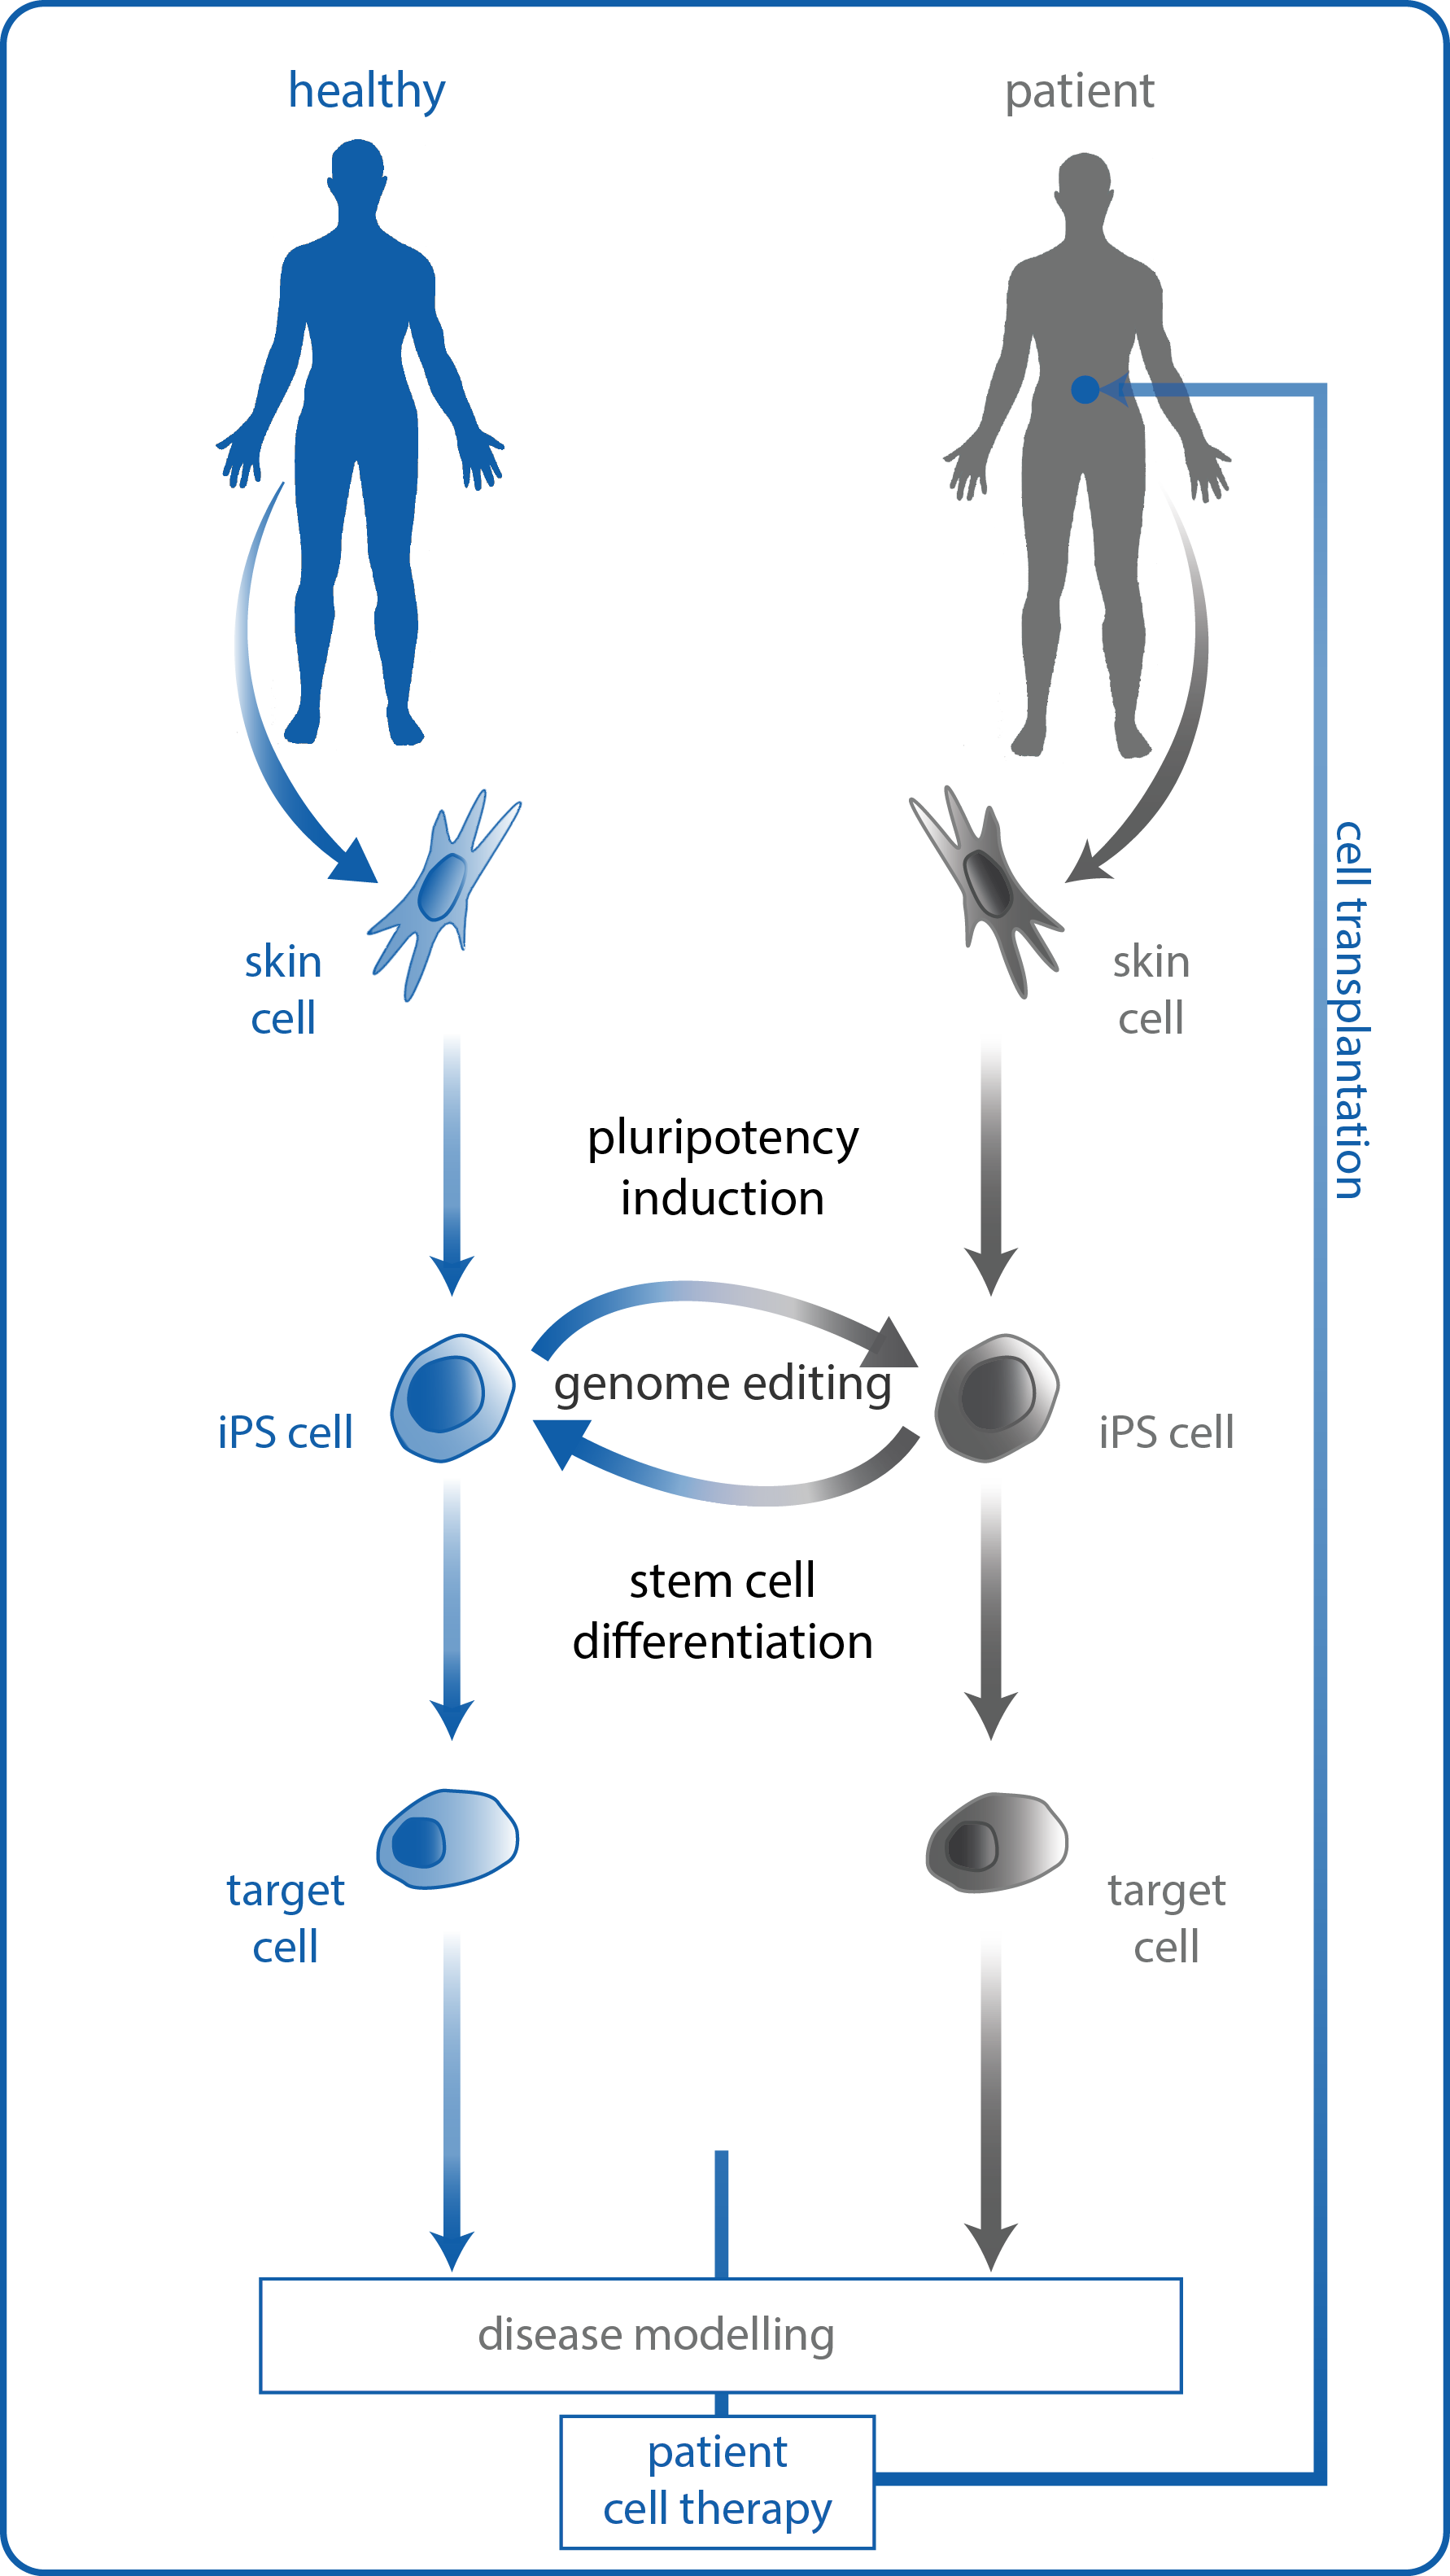 Stem cell differentiation for cell therapy and disease modelling.  Induced pluripotent stem (iPS) cells can be derived from somatic cells, such as skin cells, of healthy individuals or patients with a disease that would benefit from cell therapy, such as type 1 diabetes. Following induction of pluripotency, stem cell differentiation protocols can program iPS cells into the desired target cell. Following stem cell differentiation, a patient in need of cell therapy may receive a cell transplant originating either from their own cells or from a healthy individual. Alternatively, where a patient's own cells contain a disease-inducing gene mutation, gene editing with the CRISPR/Cas9 system can correct the mutation, generating normal cells that could then be transplanted back into the same patient. Gene editing of normal cells can also be employed to probe the function of individual genes in cell function and disease etiology.